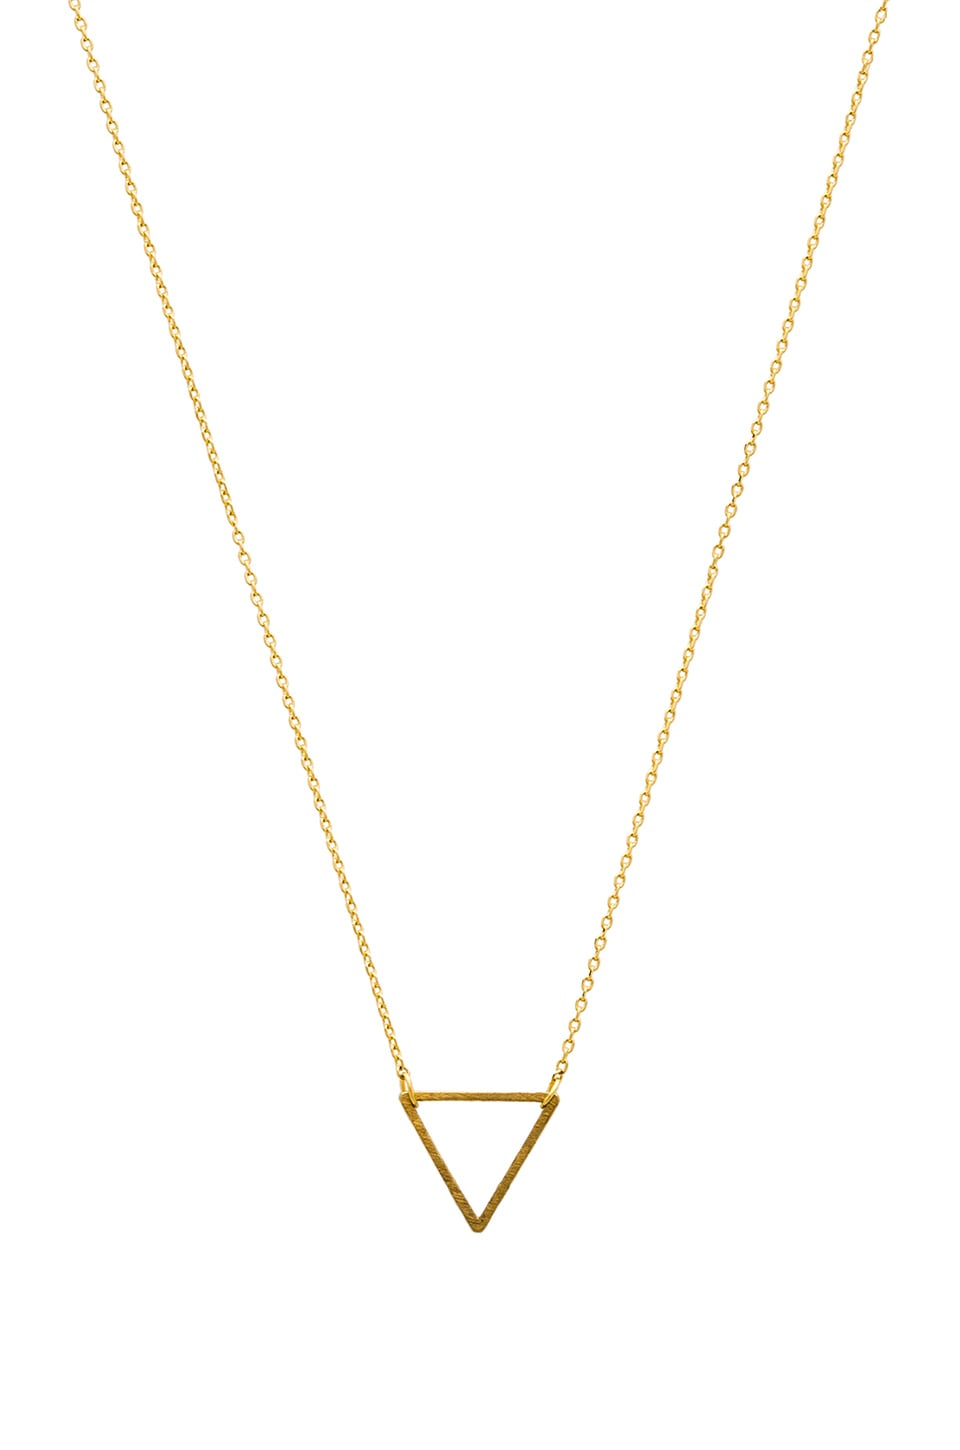 Wanderlust + Co Frame Triangle Necklace in Gold